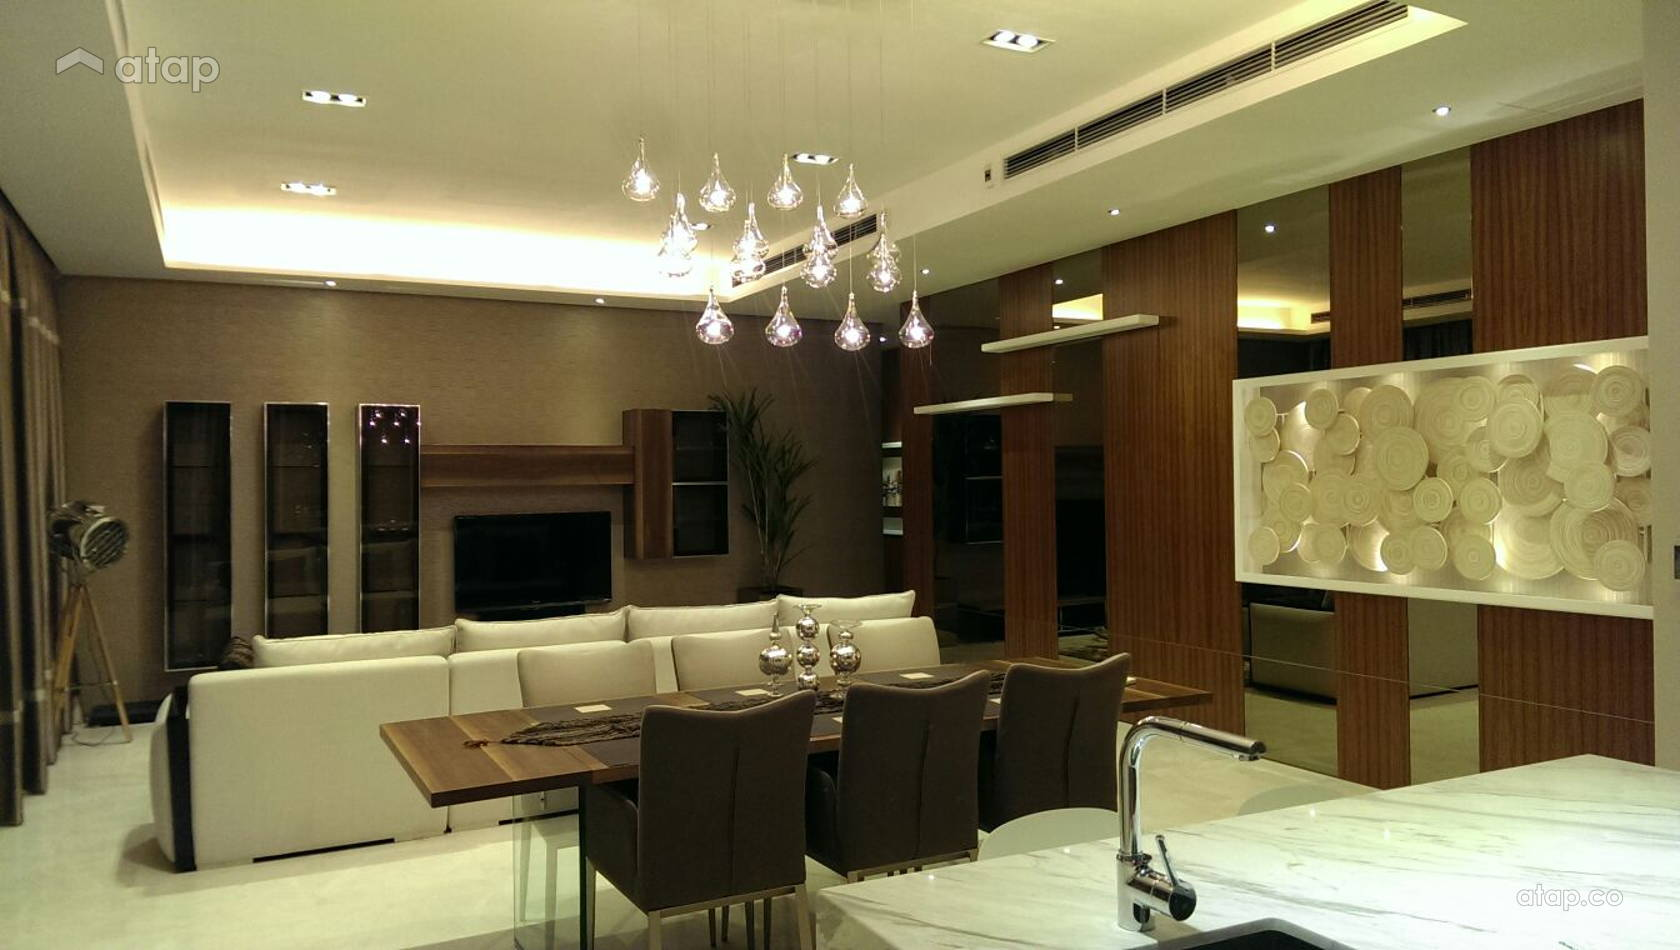 Condo KL Home Renovation Interior Design Renovation Ideas, Photos ...